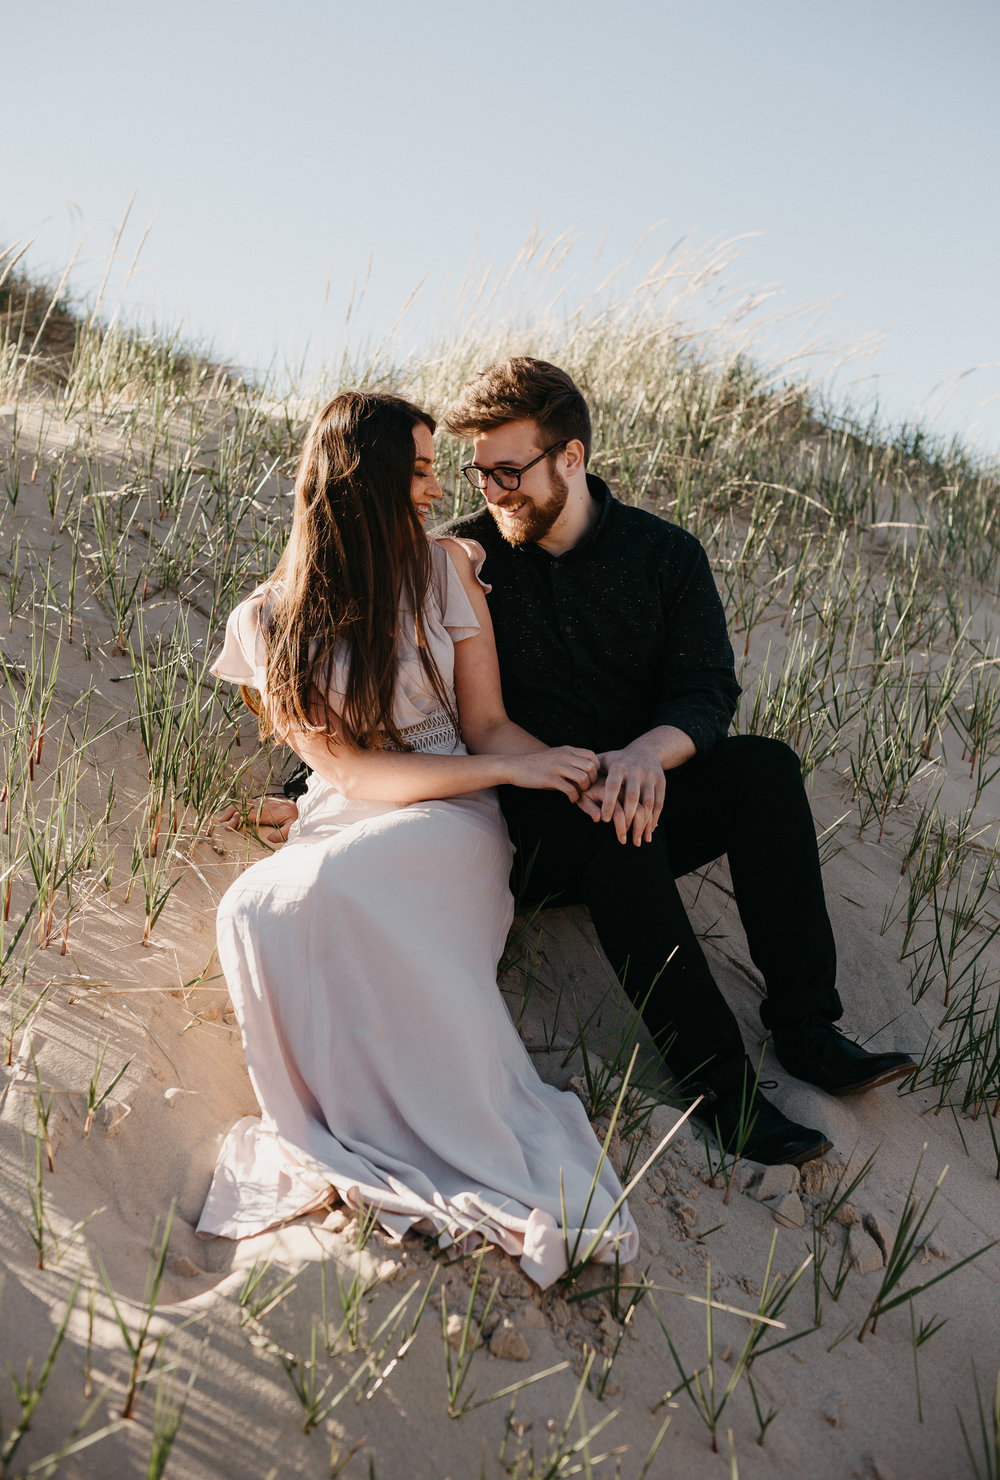 eastlyn-bright-silver-lake-sand-dunes-michigan-wedding-engagement-photographer-71.jpg